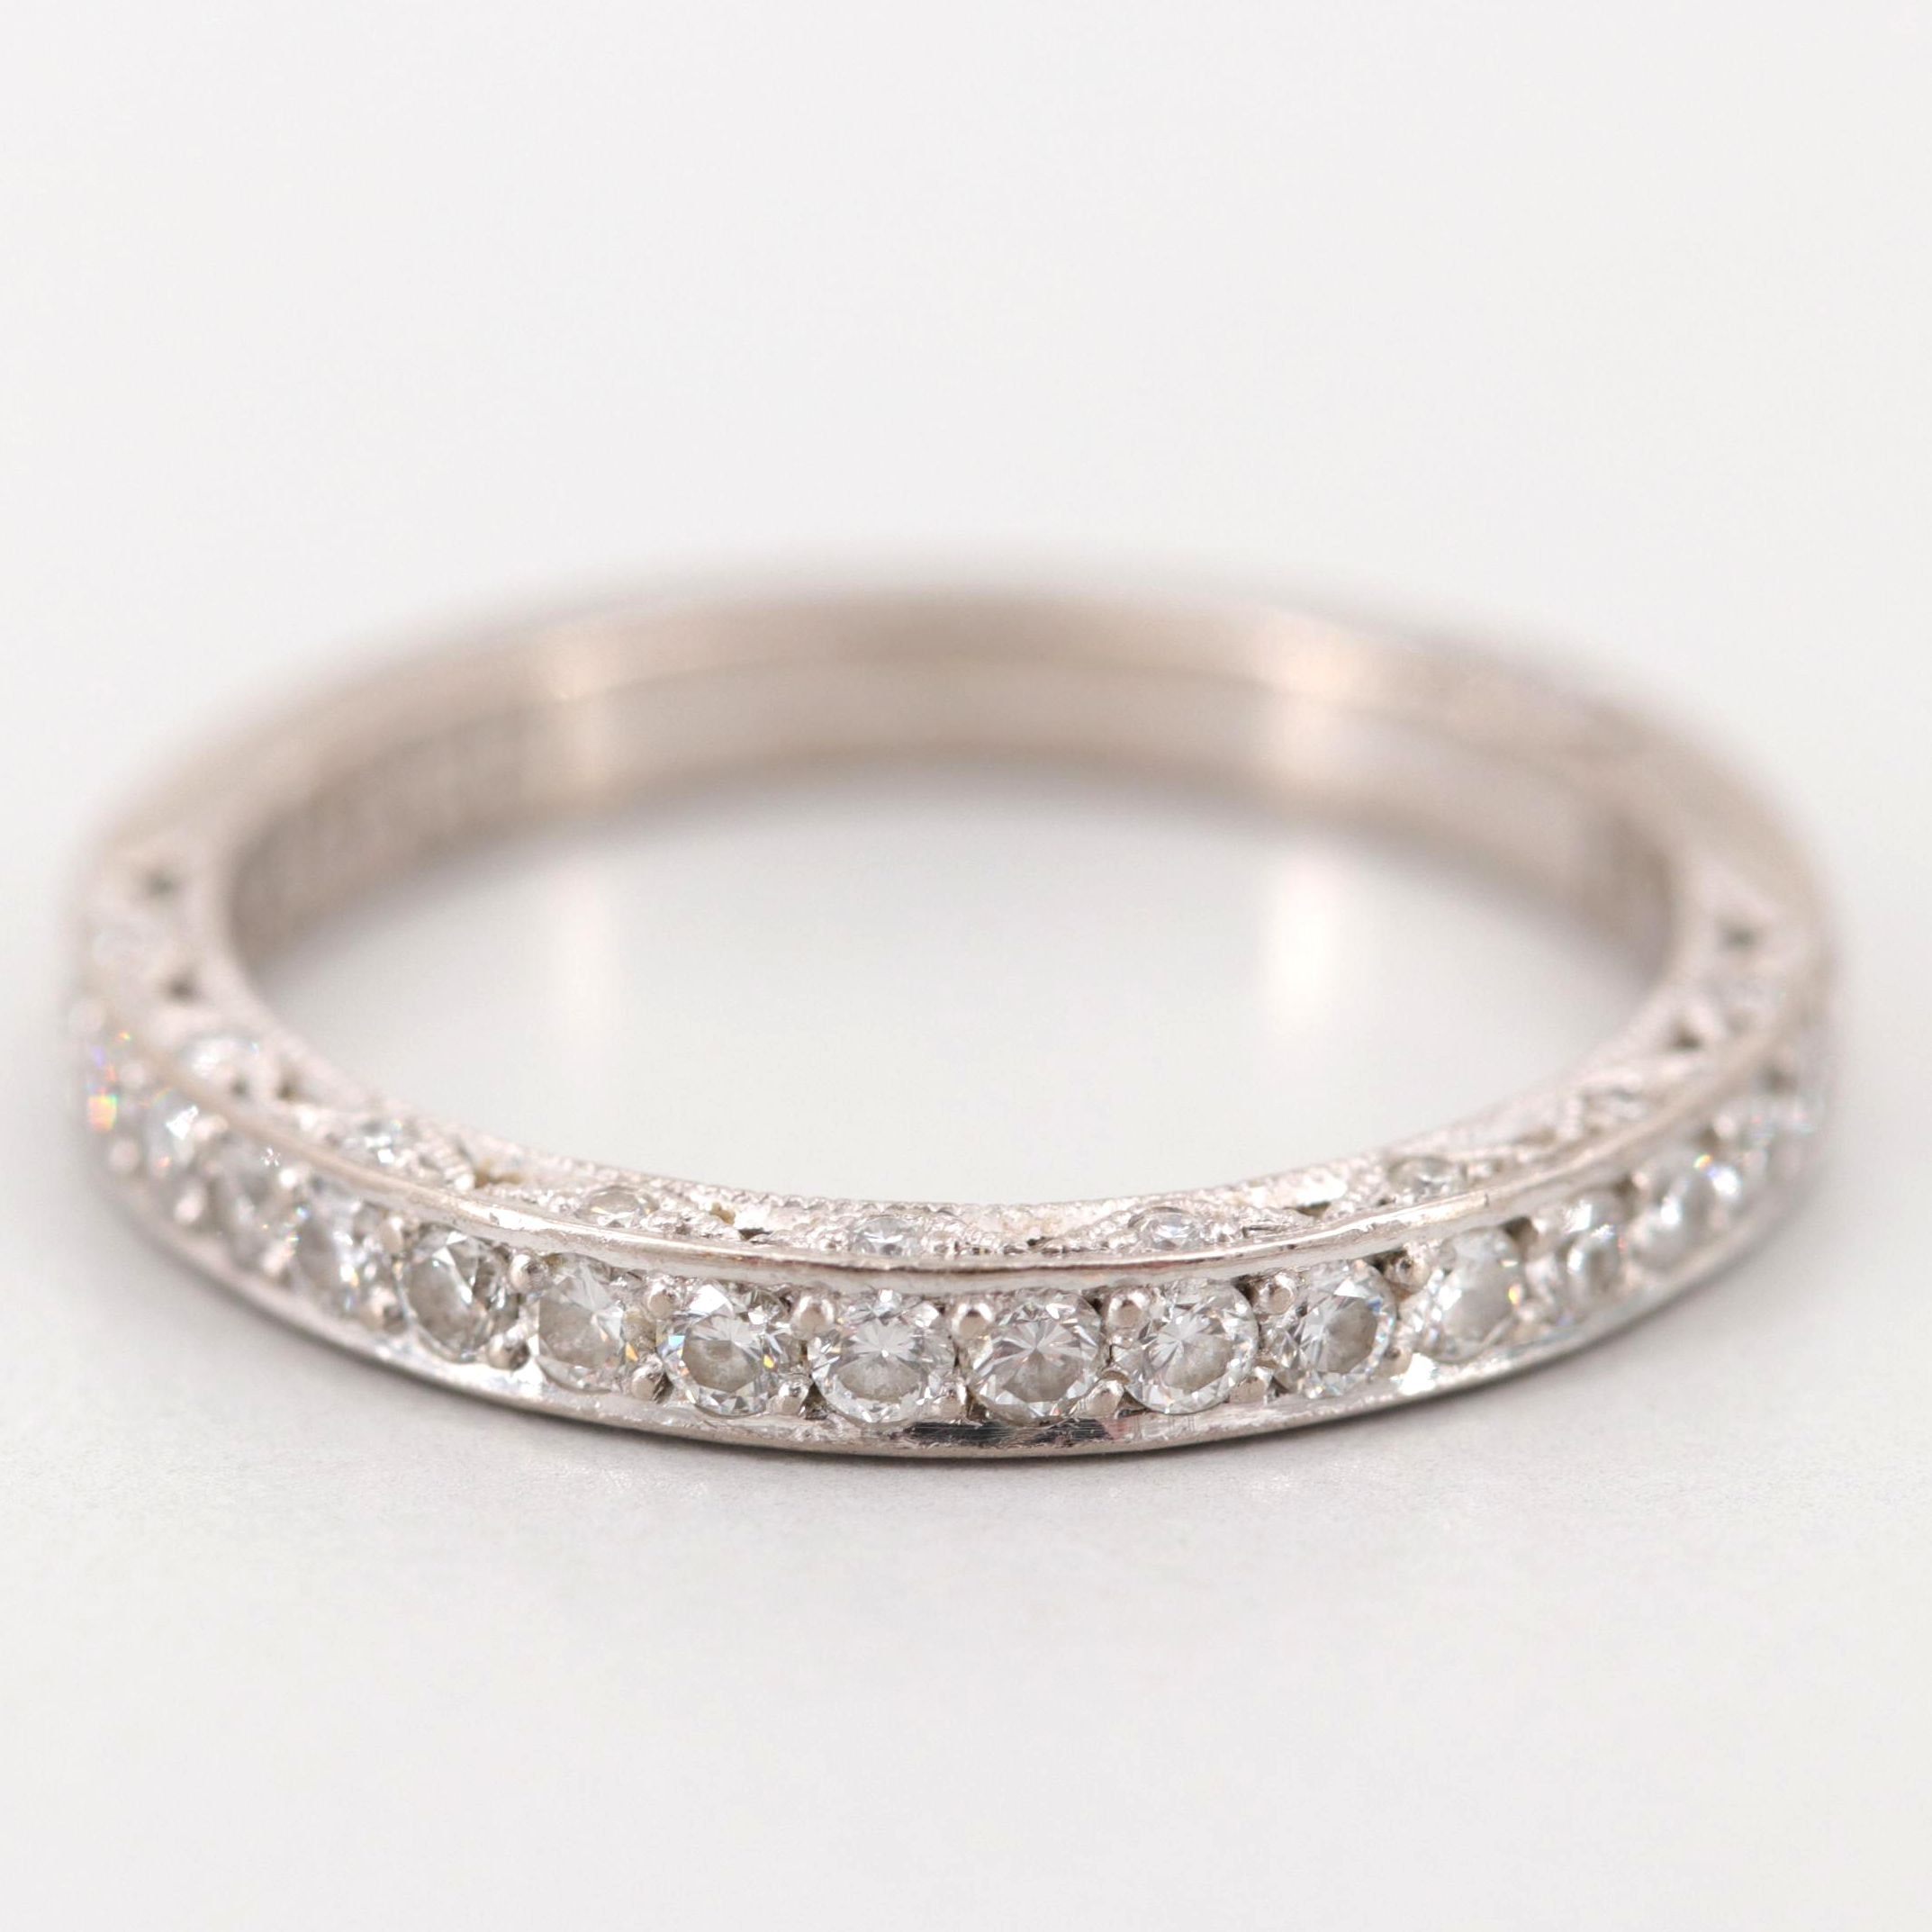 Tacori 18K White Gold Diamond Band Ring with Scalloped Bridge Detail